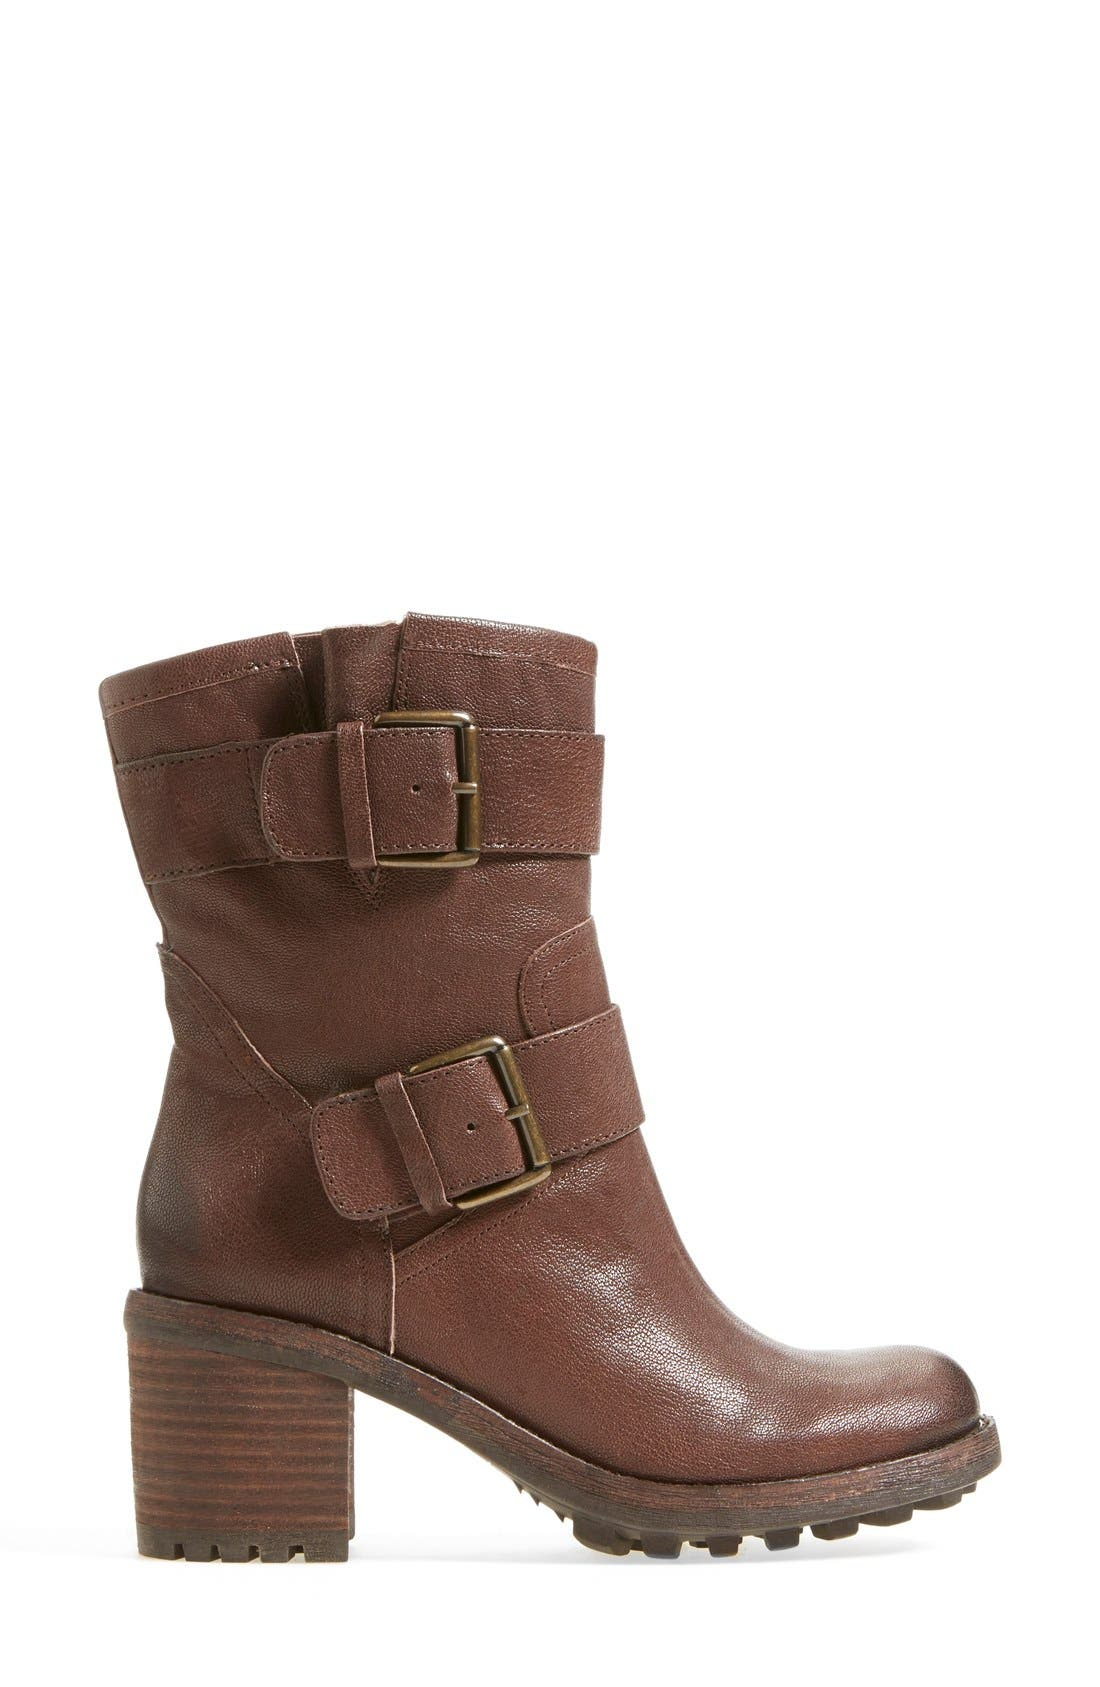 'Troy' Moto Boot,                             Alternate thumbnail 7, color,                             Dark Brown Leather